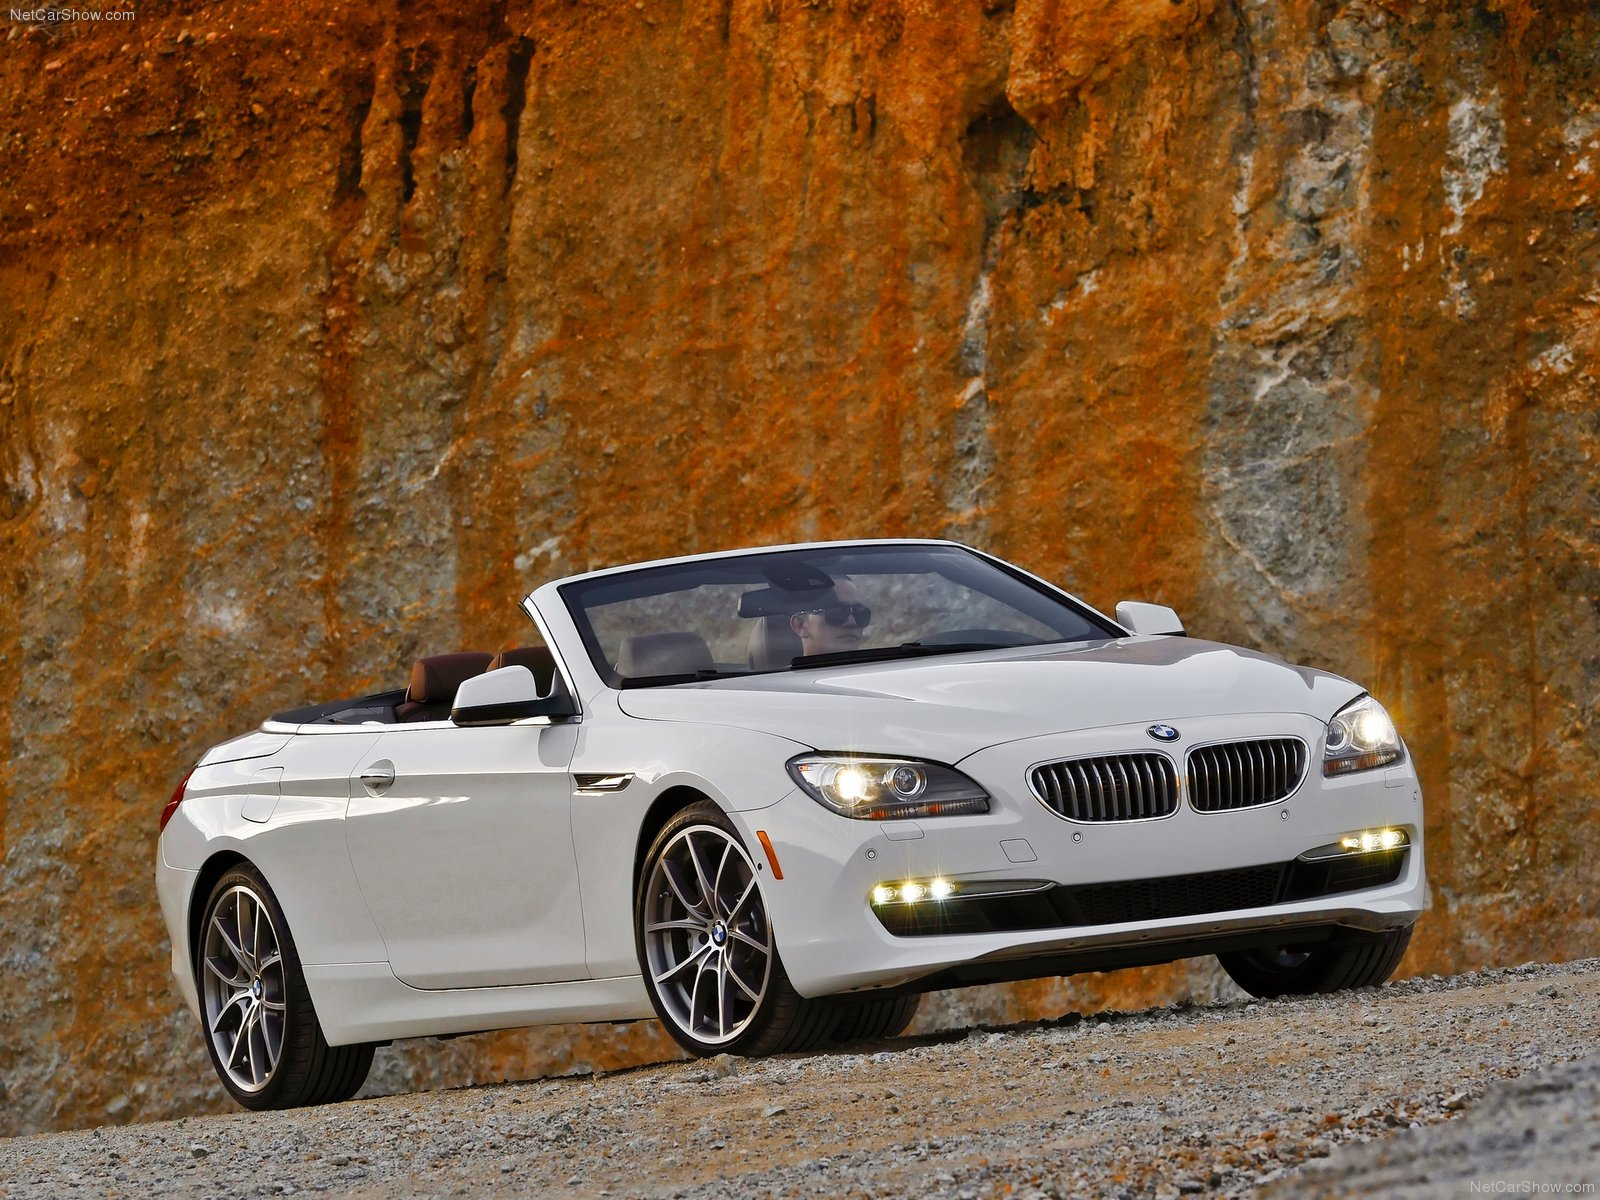 BMW 6-series F13 Convertible photo #81141